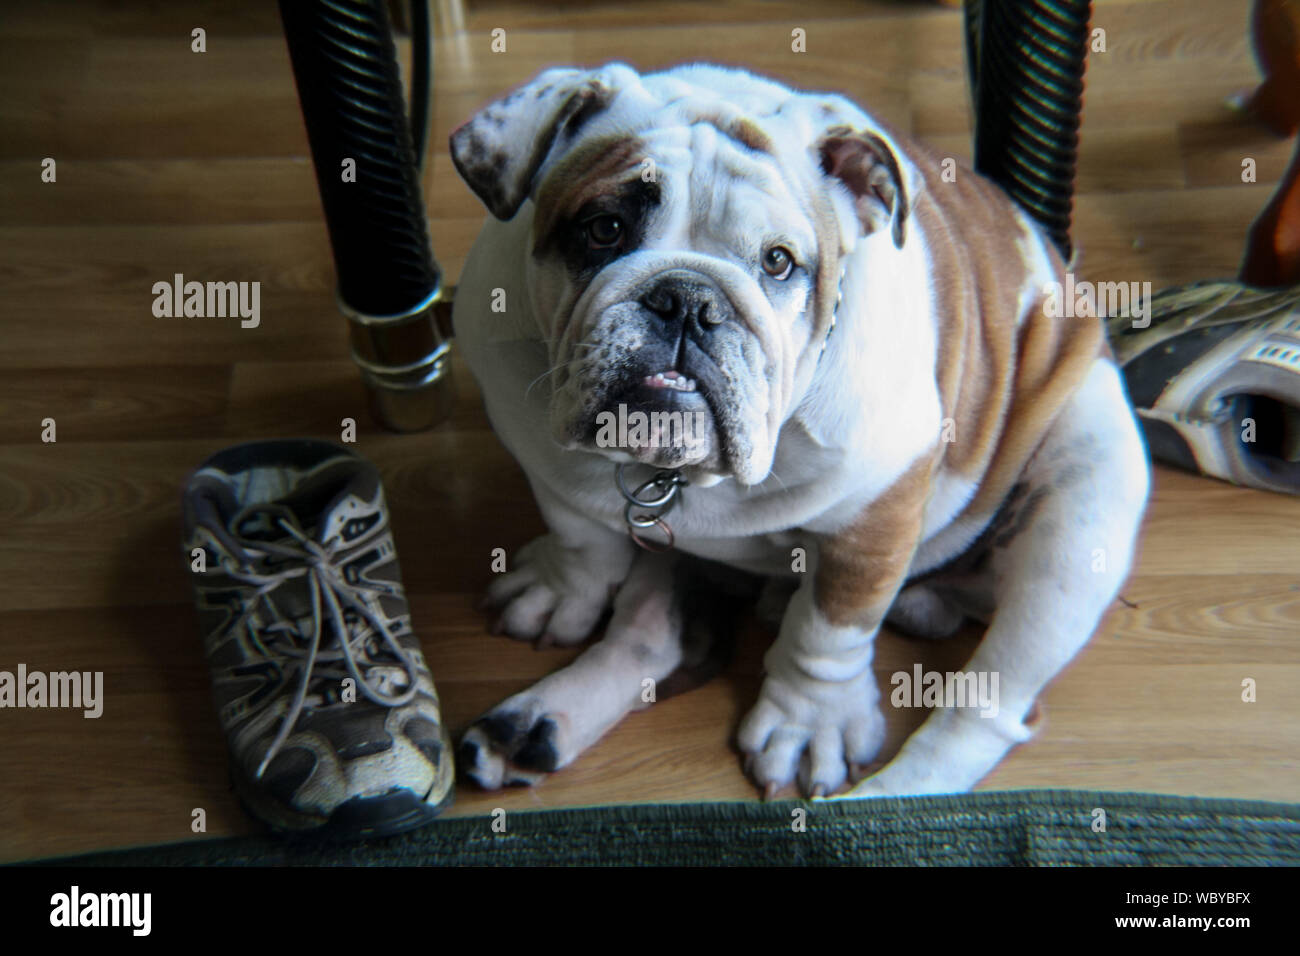 Portrait Of English Bulldog On Hardwood Floor At Home Stock Photo